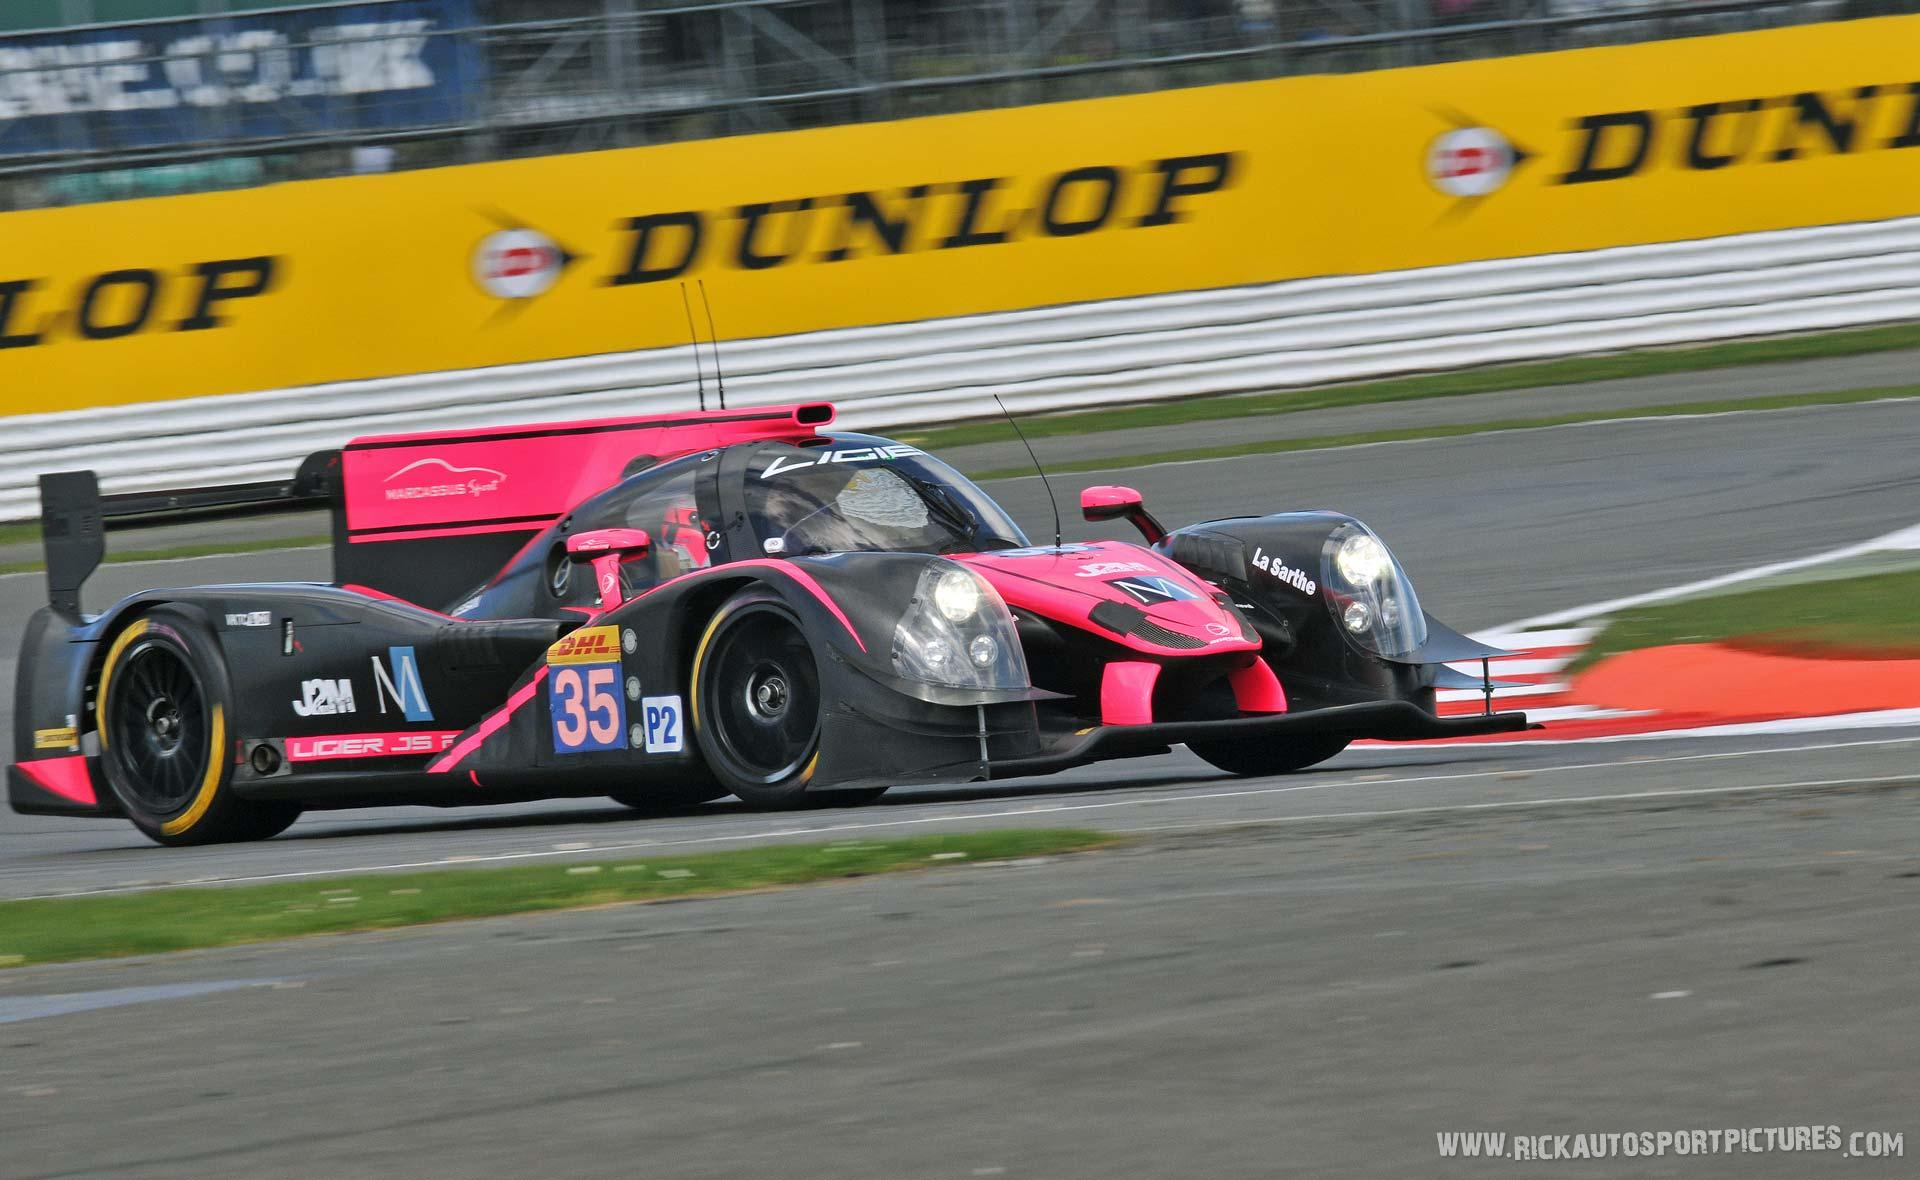 Jacques Nicolet silverstone 2015